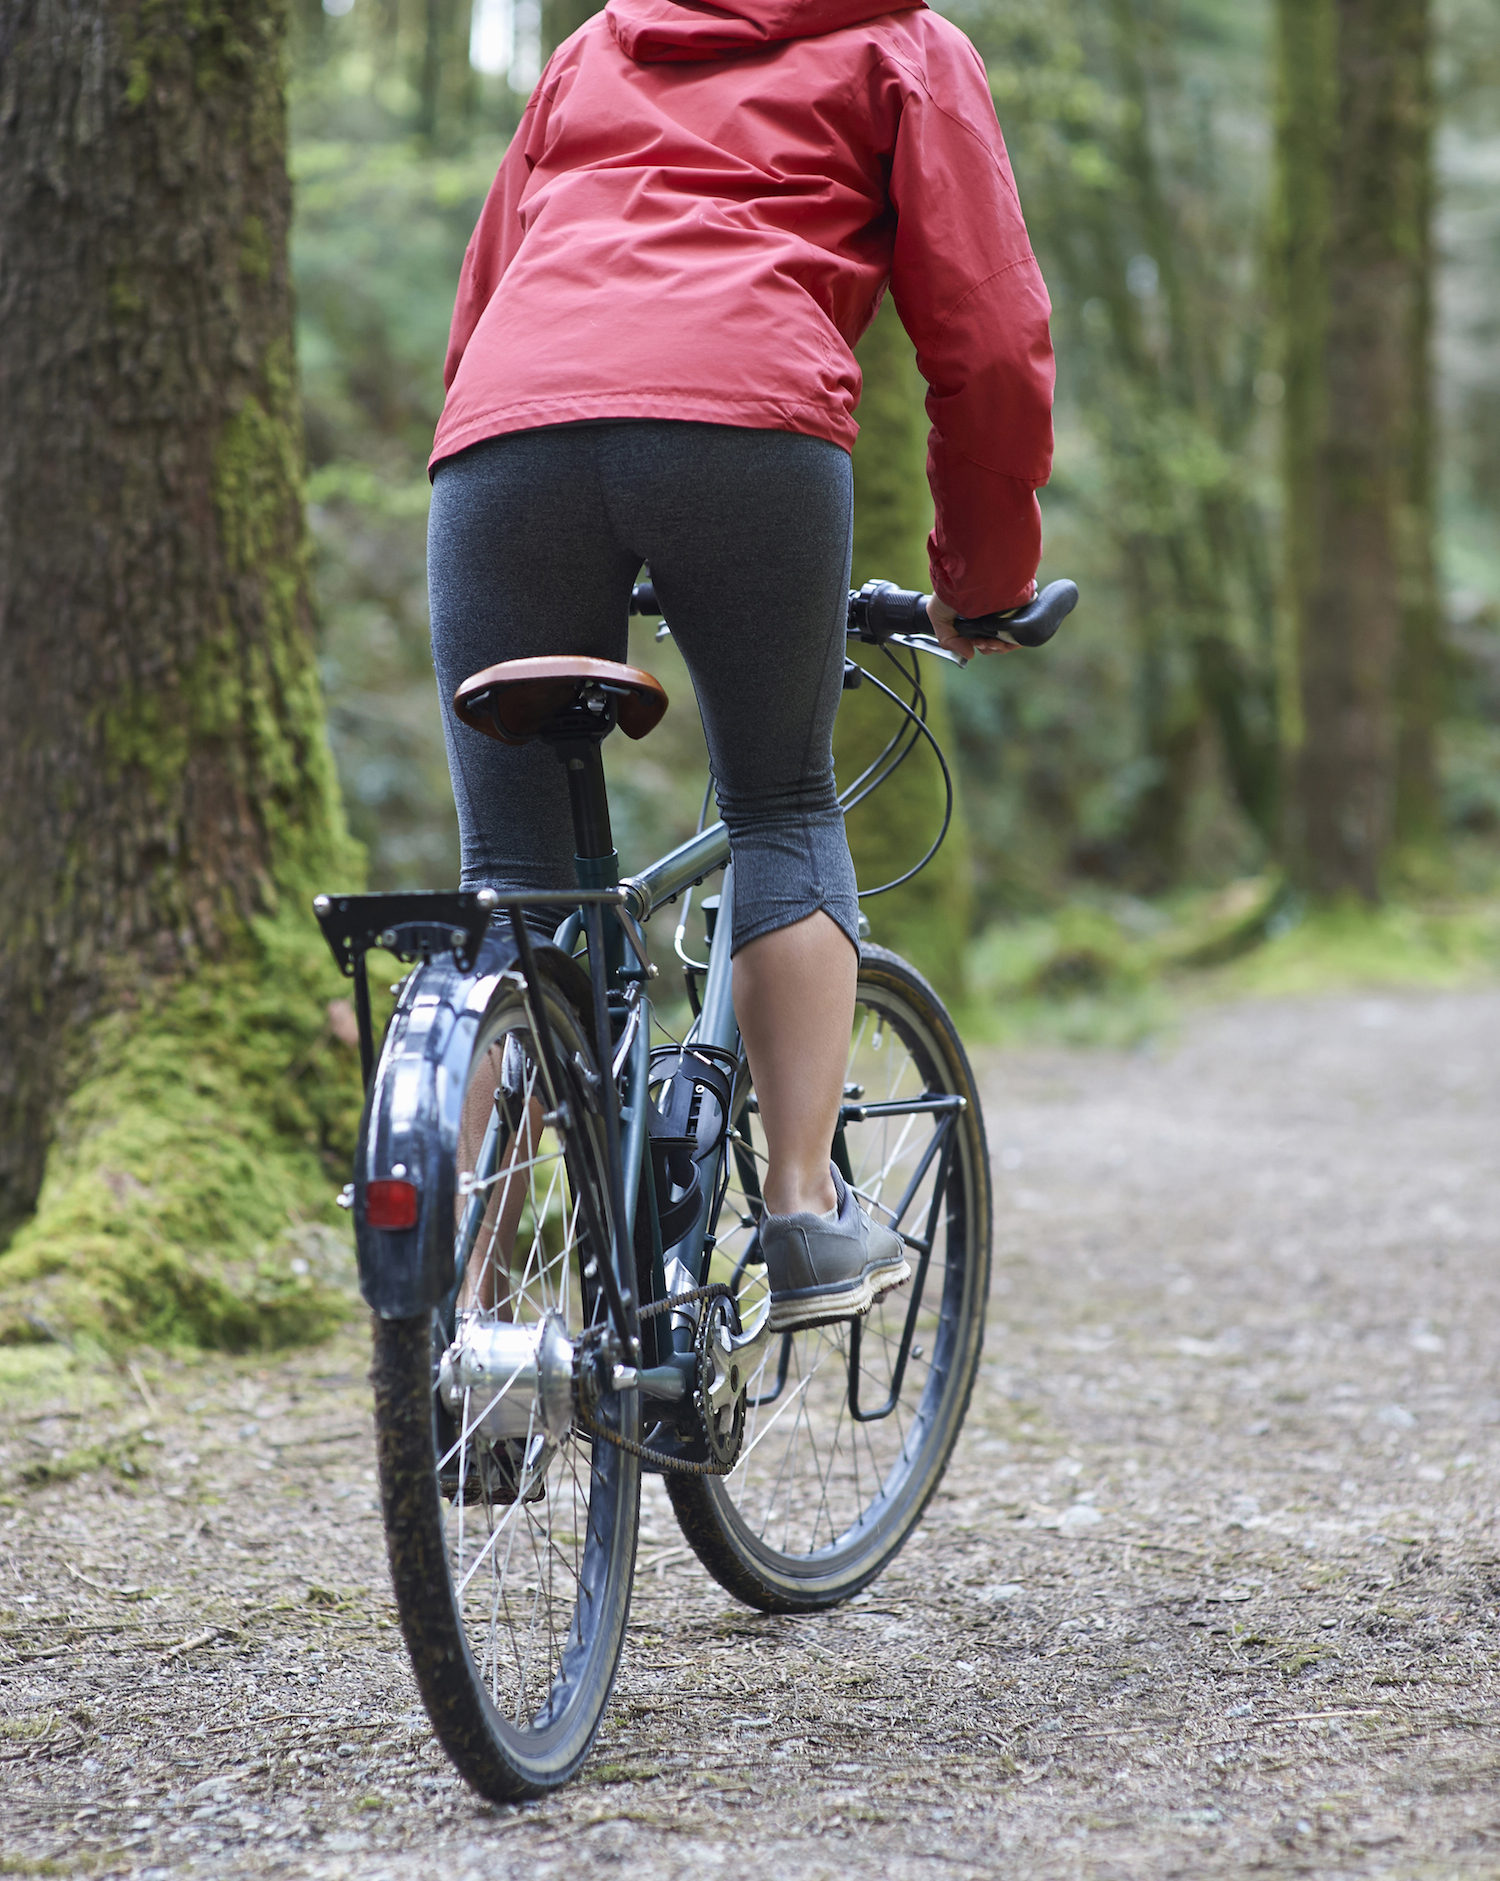 Cyclist riding bike along path in woods